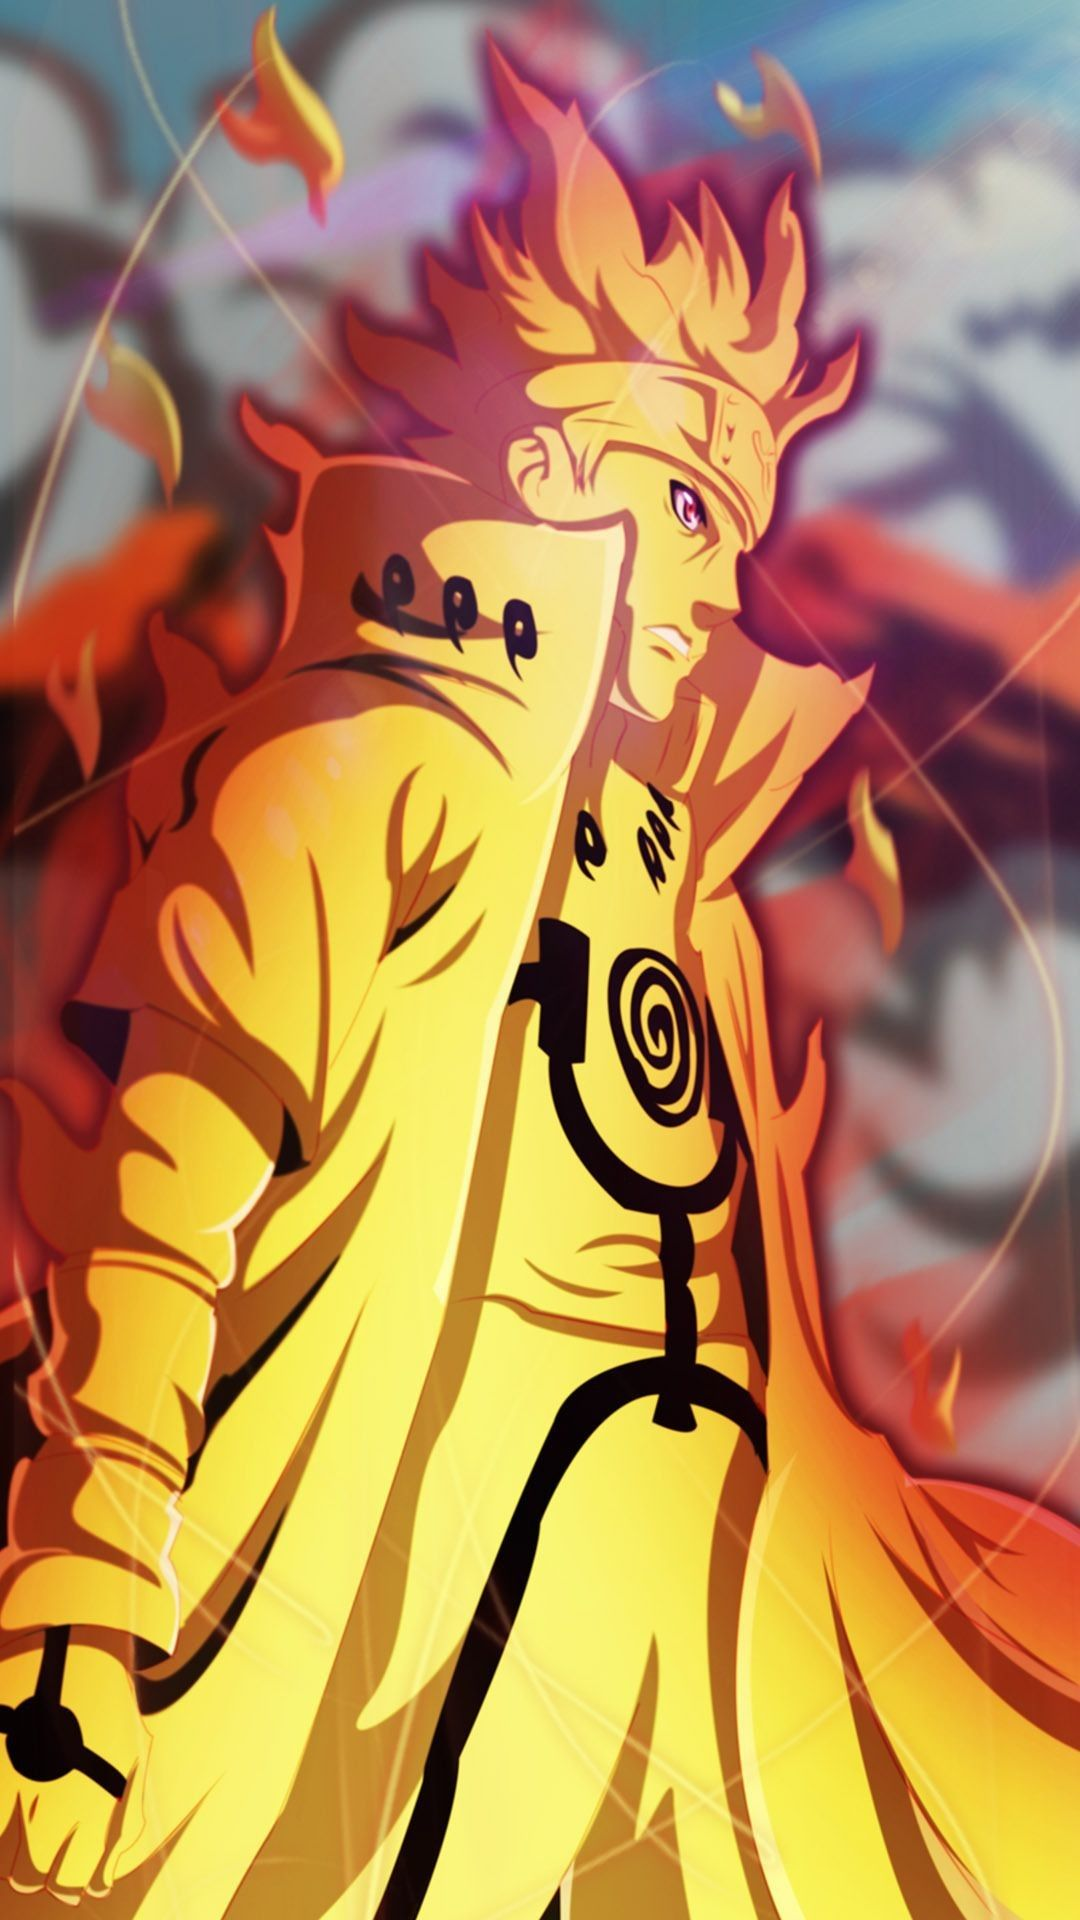 78 Naruto Wallpapers On WallpaperPlay